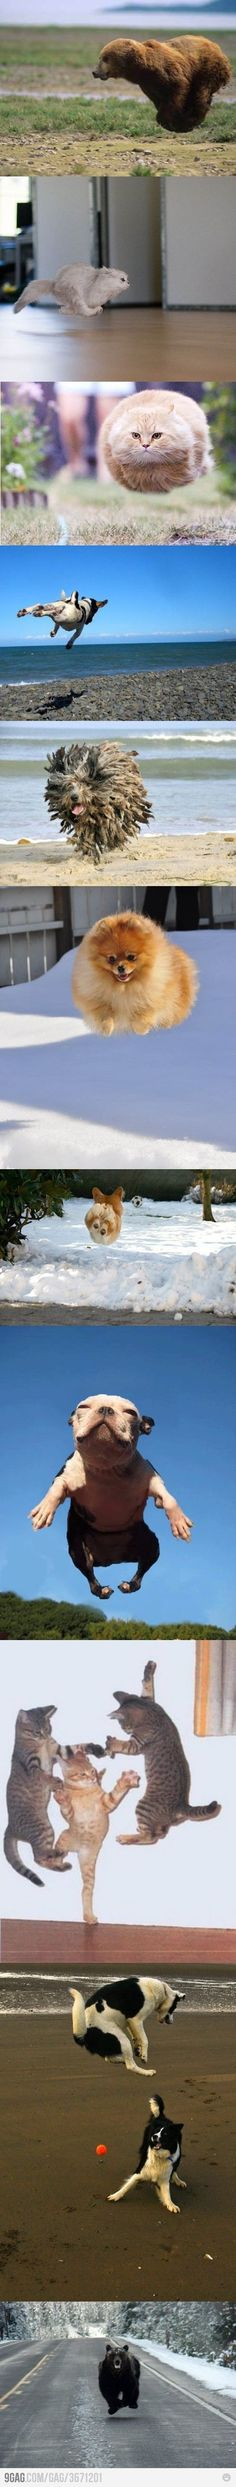 Hovering animals!... I'd hate to be the chased person of the last pic!